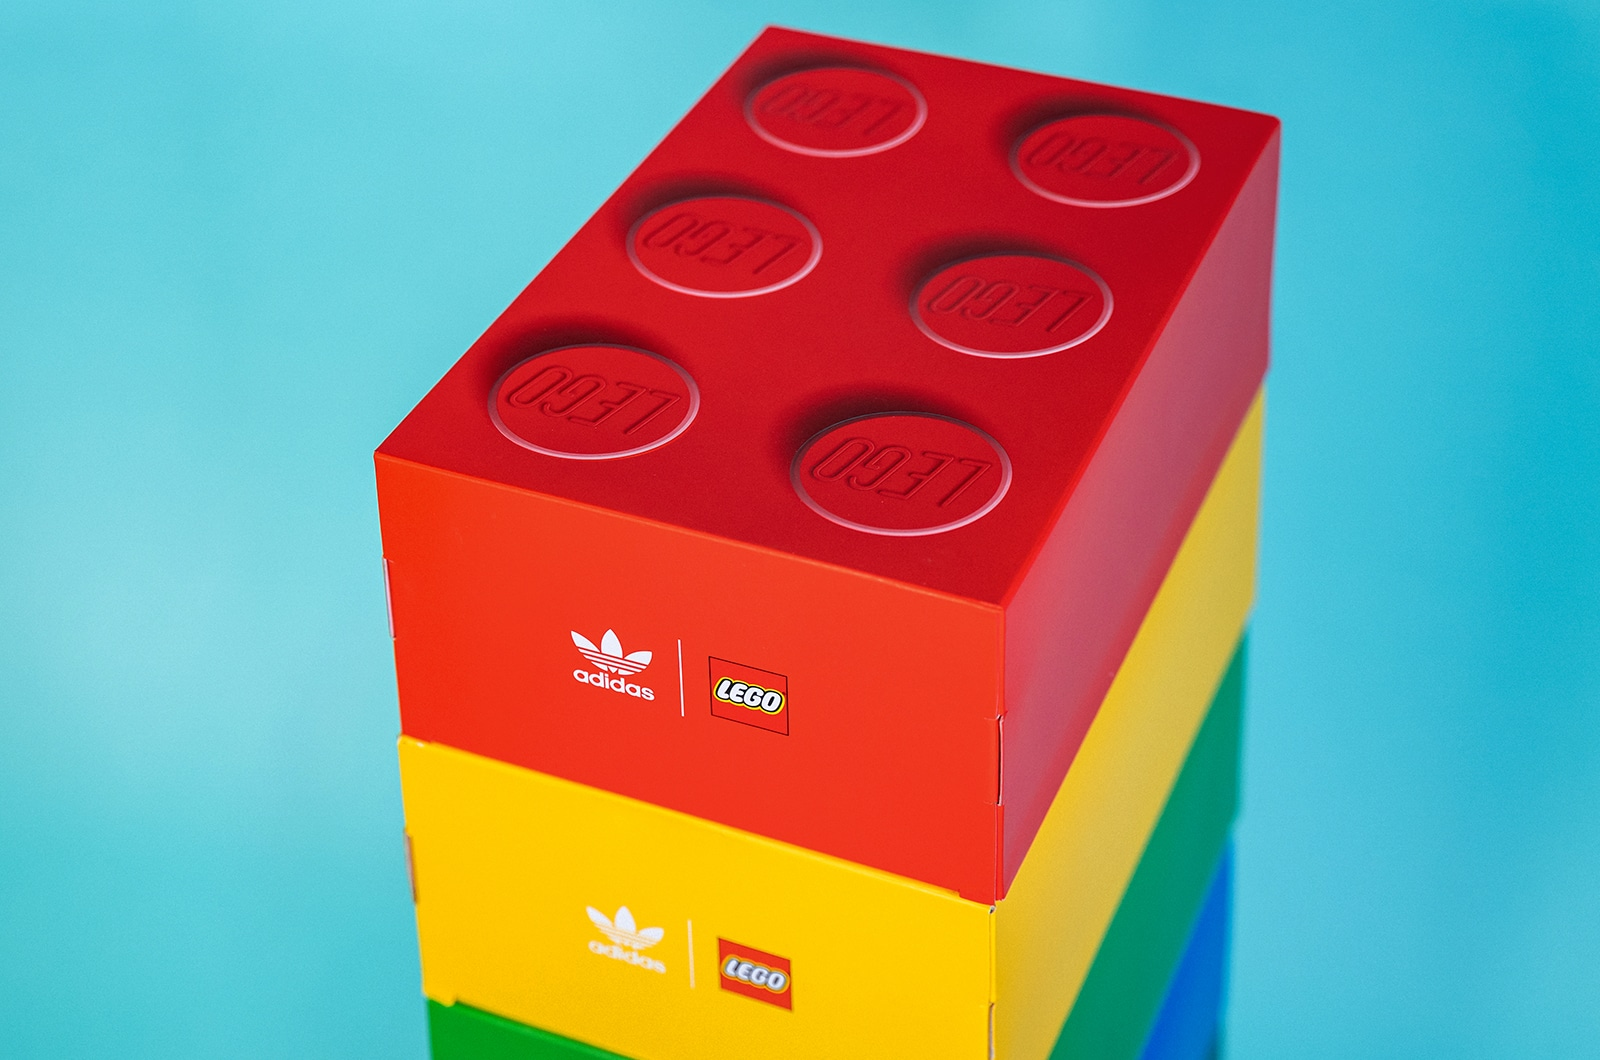 Adidas X LEGO ZX8000 Color Pack April 2021